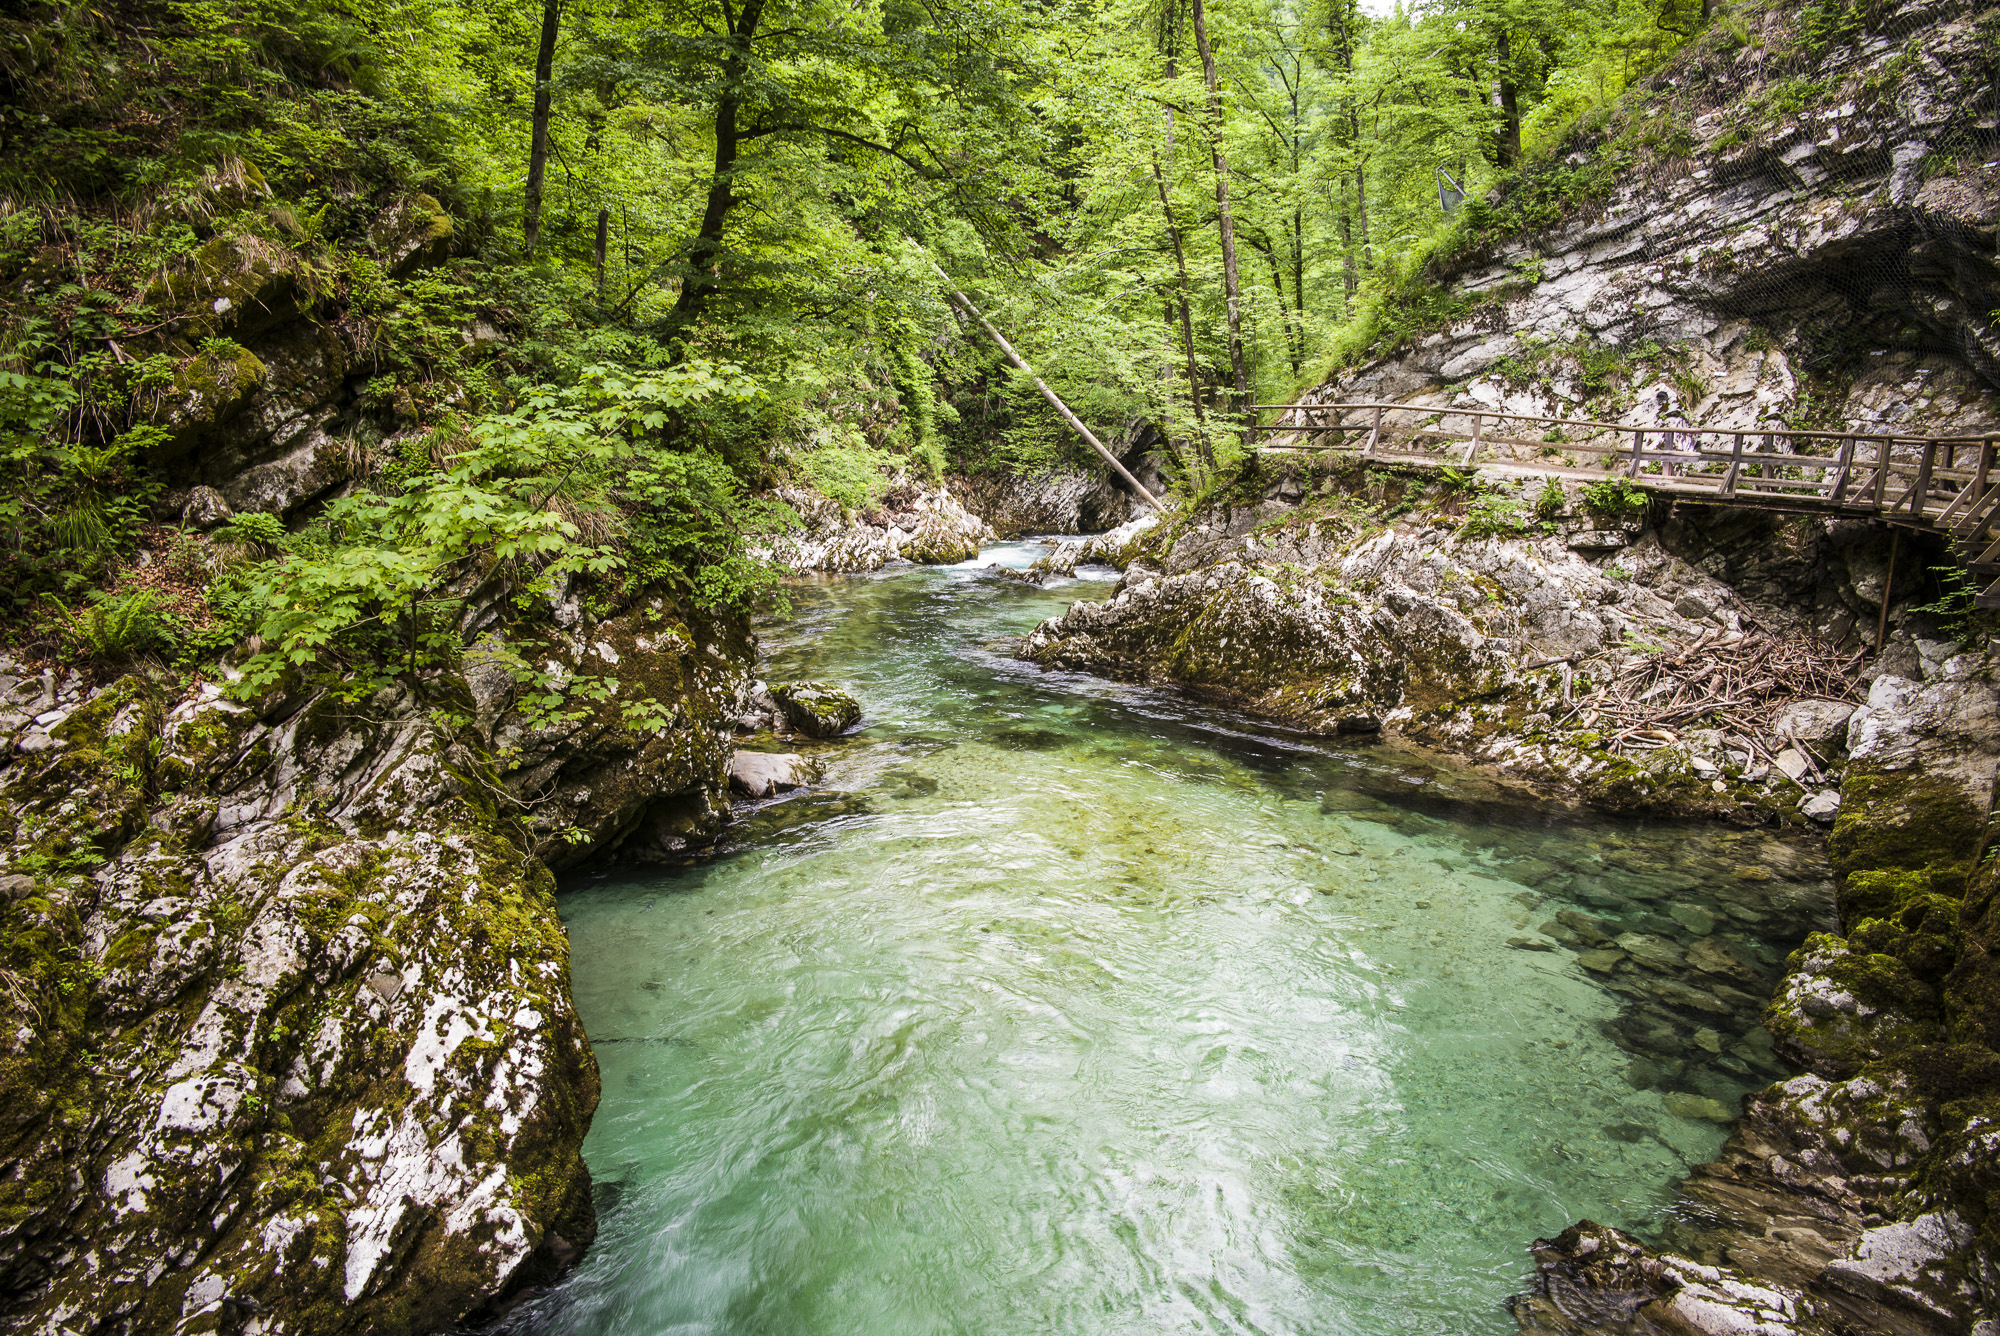 Pool in Vingtar Gorge